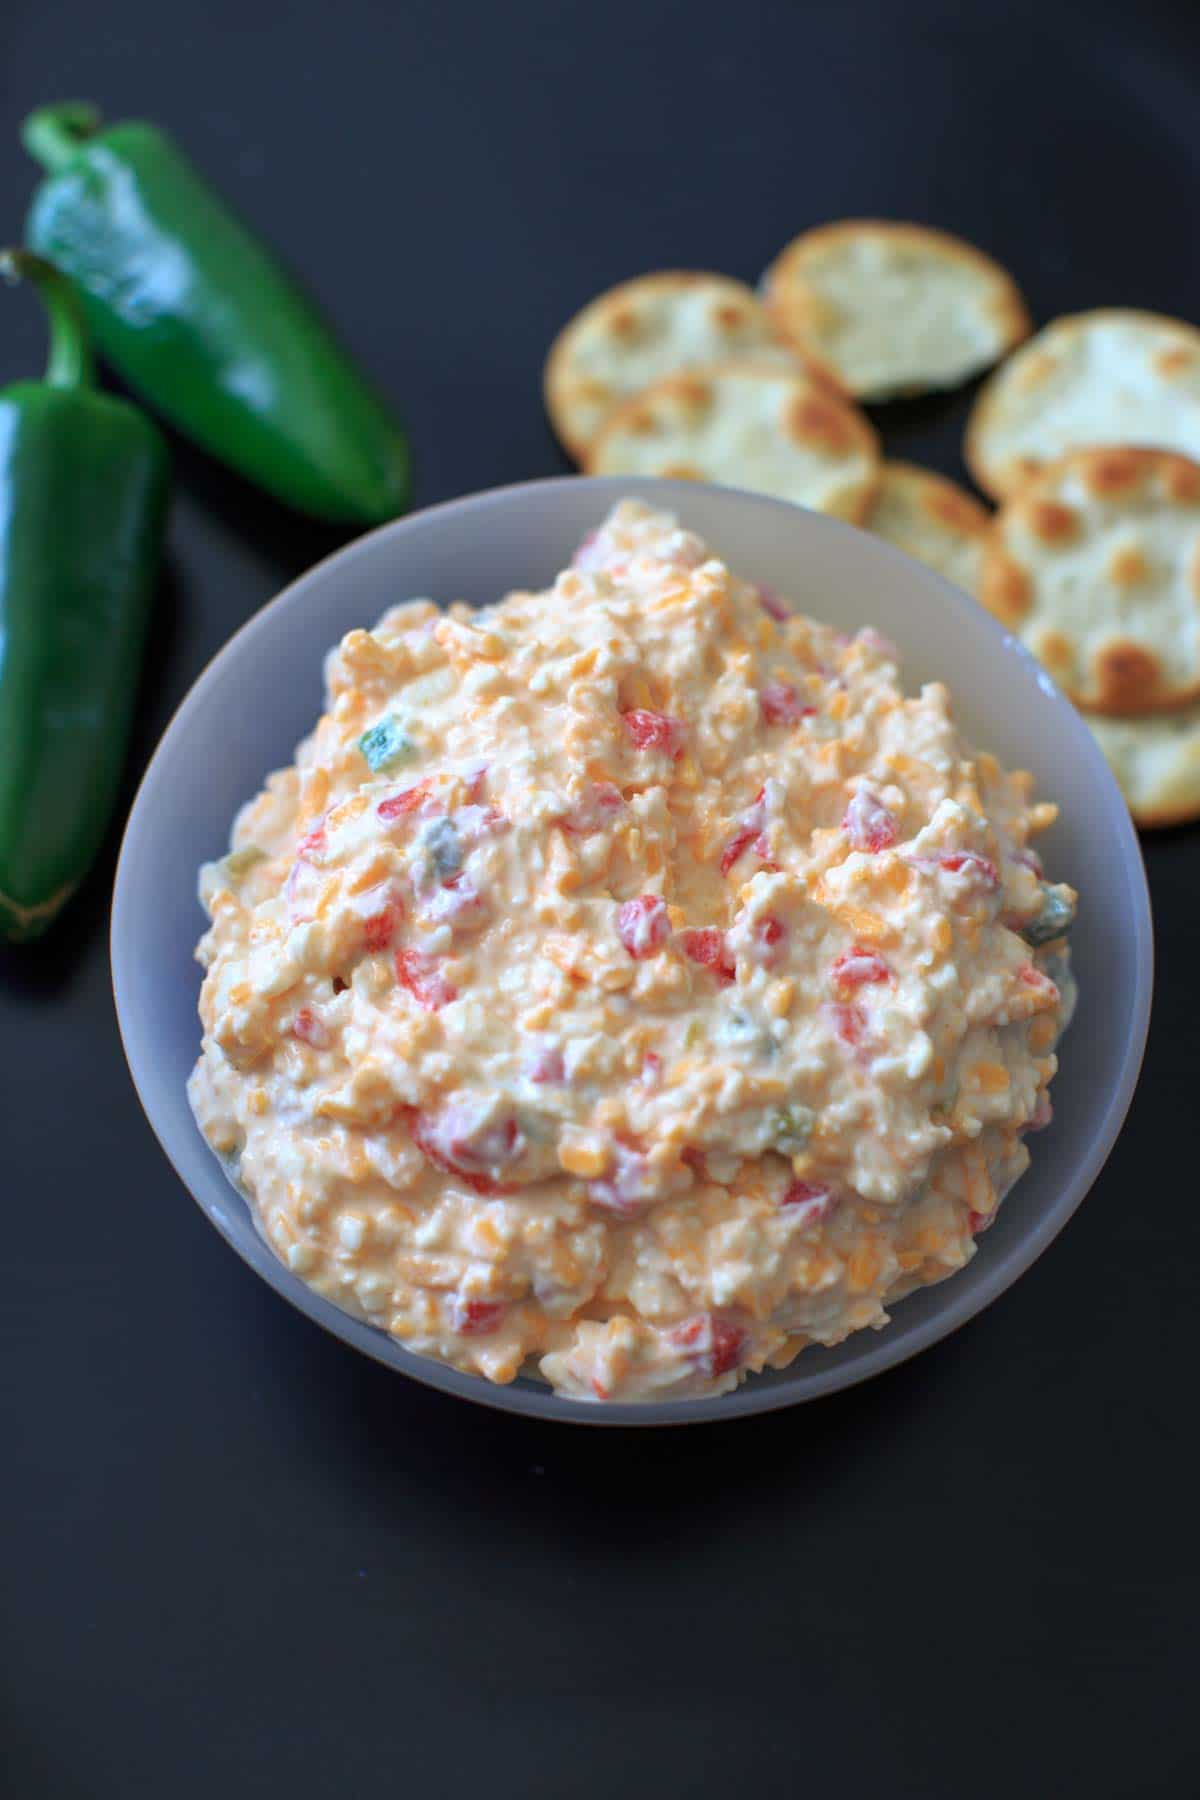 Skinny Jalapeno Pimento Cheese - a spicy, healthier take on the southern favorite. No mayonnaise!